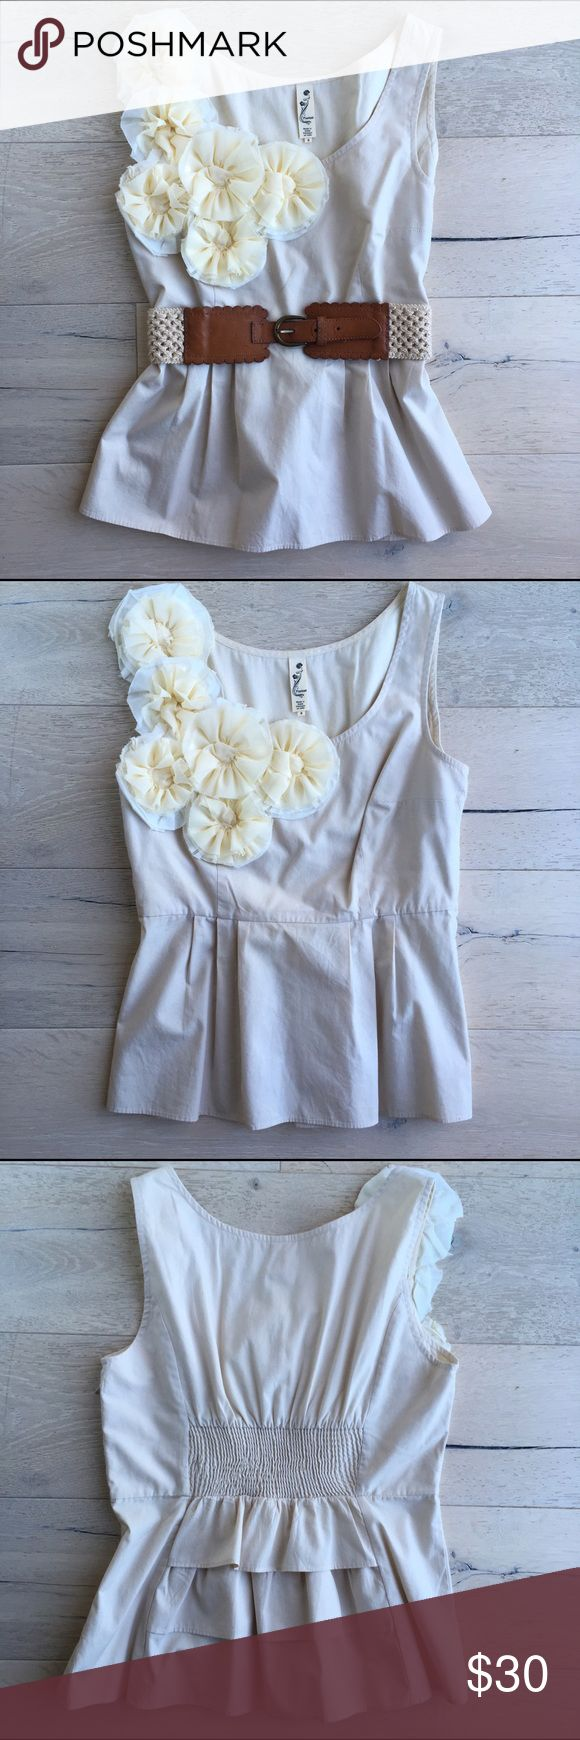 Anthropologie Women's Floreat Peplum Flower Top Anthropologie Women's Floreat Peplum Flower Top.  Size 6.  Top has beautiful detailing with six pale yellow and white flowers that cascade down the right shoulder.  Flattering peplum with smocked elastic back above the ruffle detail.  Belt not included in listing.  Comes from a smoke free, pet free home. Anthropologie Tops Blouses